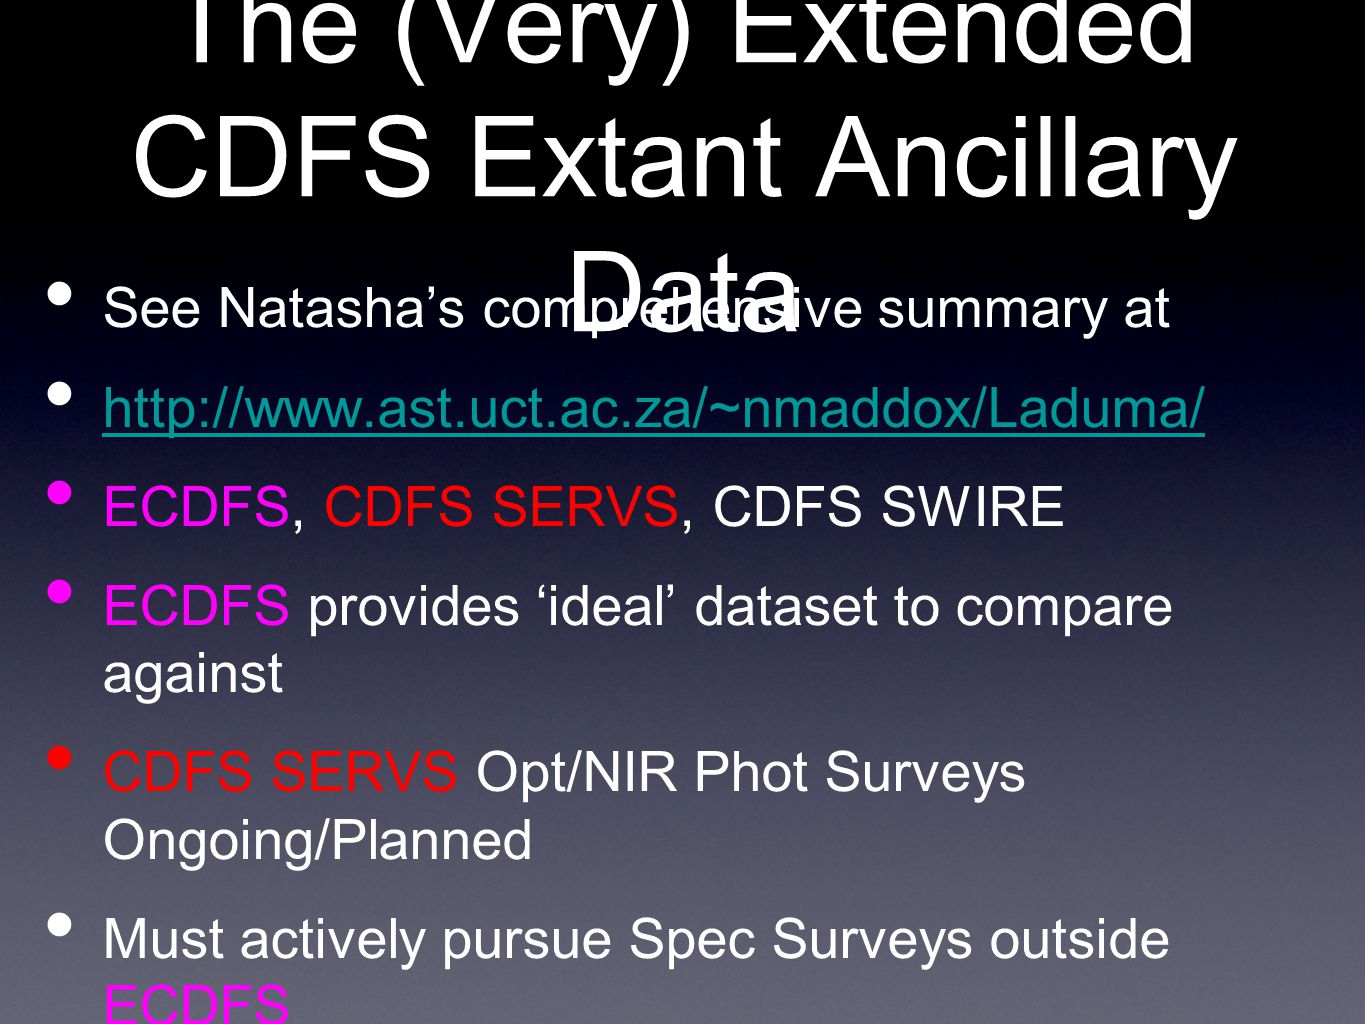 The (Very) Extended CDFS Extant Ancillary Data See Natasha's comprehensive summary at http://www.ast.uct.ac.za/~nmaddox/Laduma/ ECDFS, CDFS SERVS, CDFS SWIRE ECDFS provides 'ideal' dataset to compare against CDFS SERVS Opt/NIR Phot Surveys Ongoing/Planned Must actively pursue Spec Surveys outside ECDFS